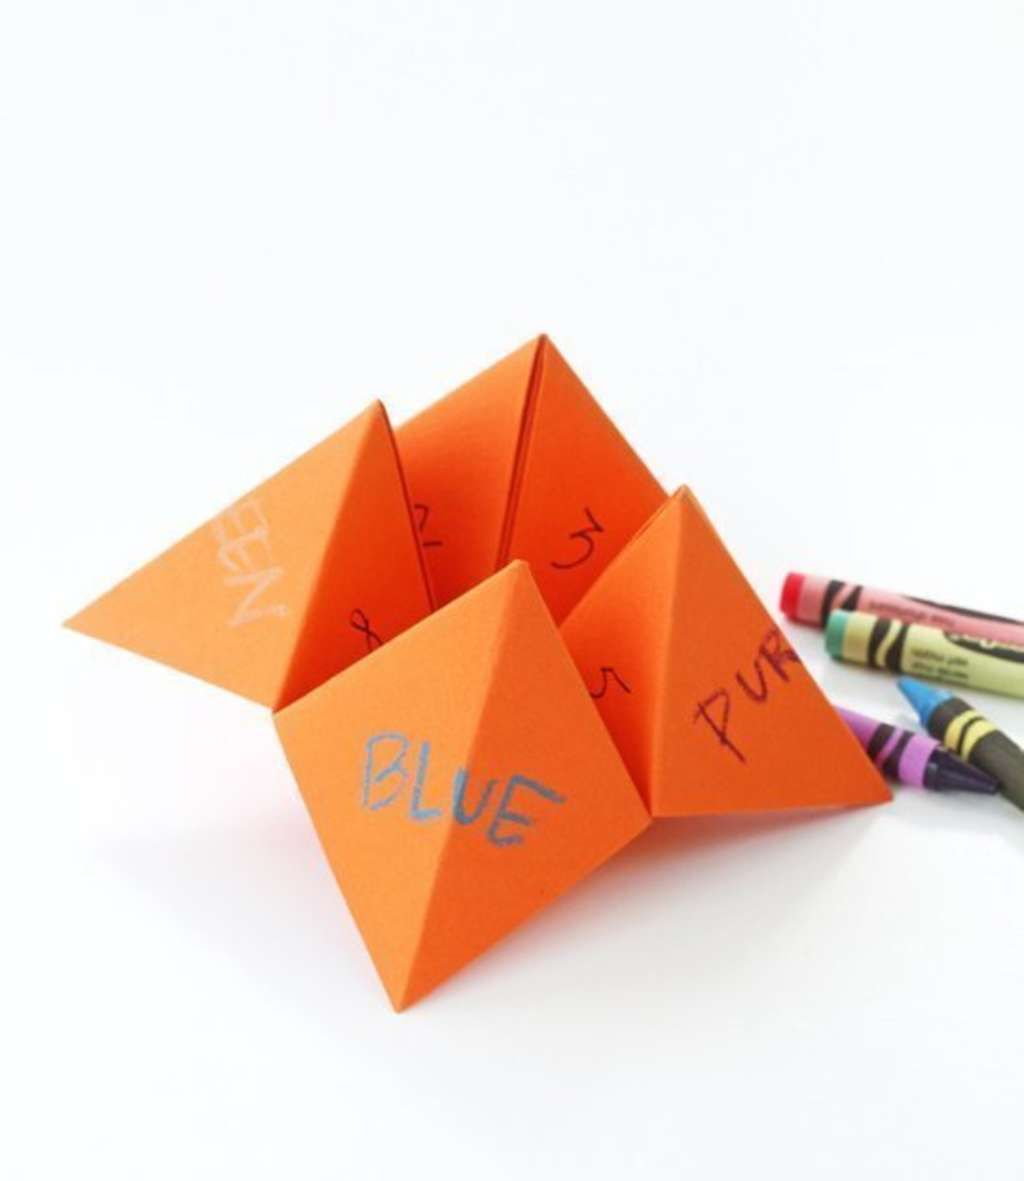 How To Make An Origami Fortune Teller Origami Fortune Teller Fortune Teller Paper Fortune Teller